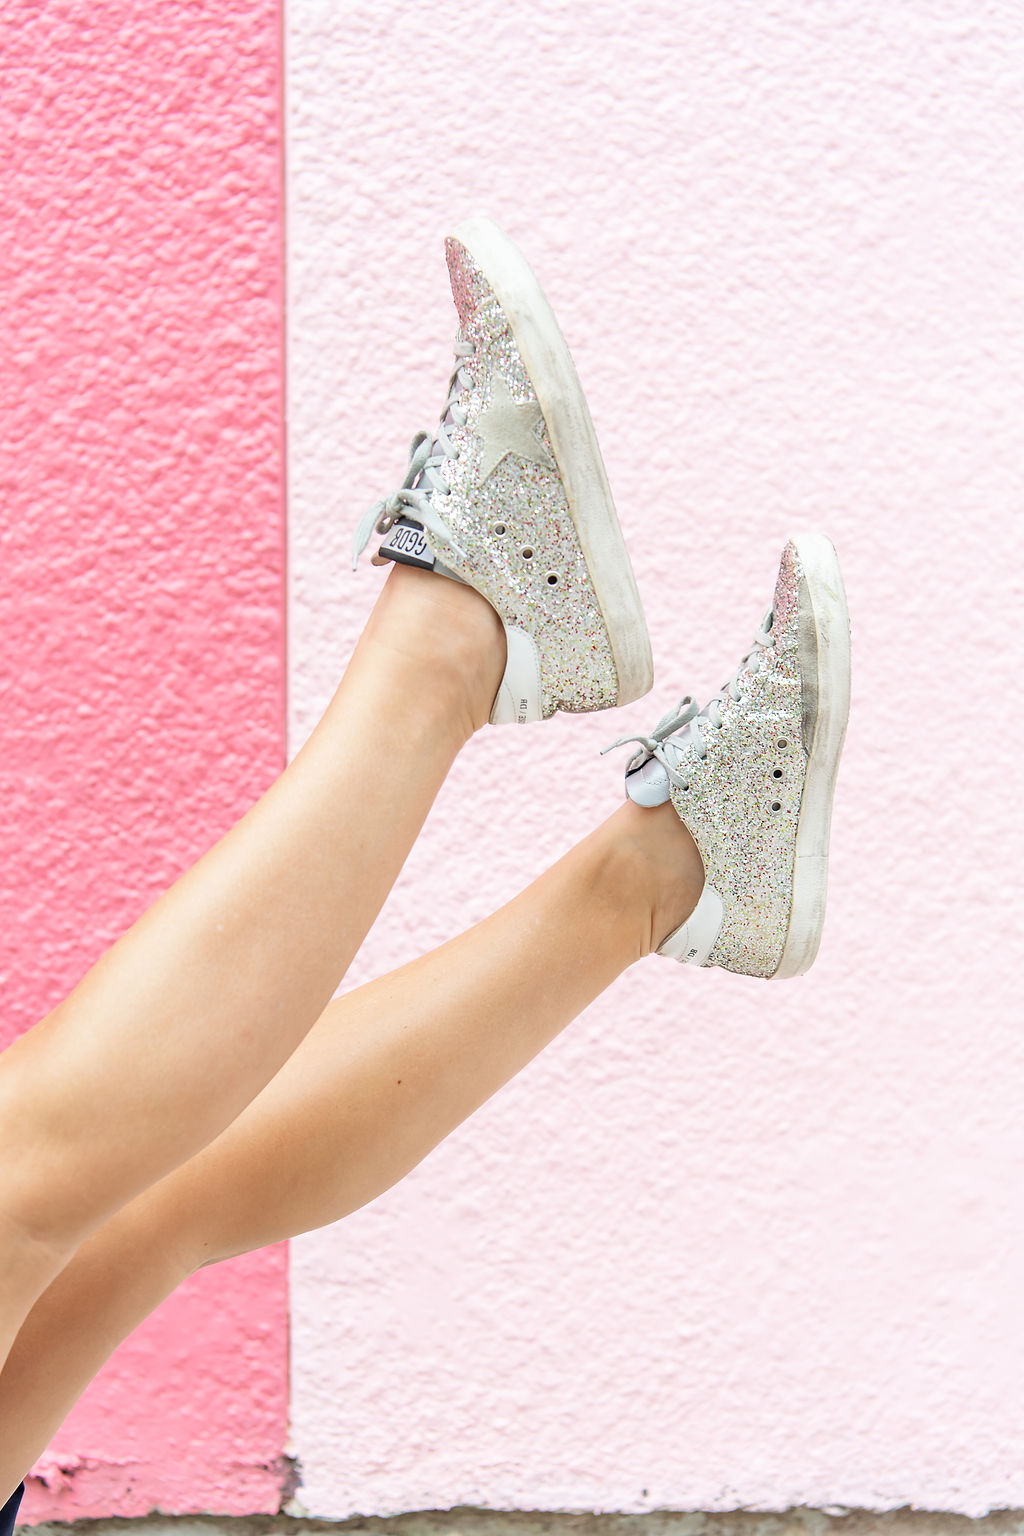 Summer Dress by popular Houston fashion blog, The House of Fancy: image of a woman wearing silver glitter Golden Goose sneakers.